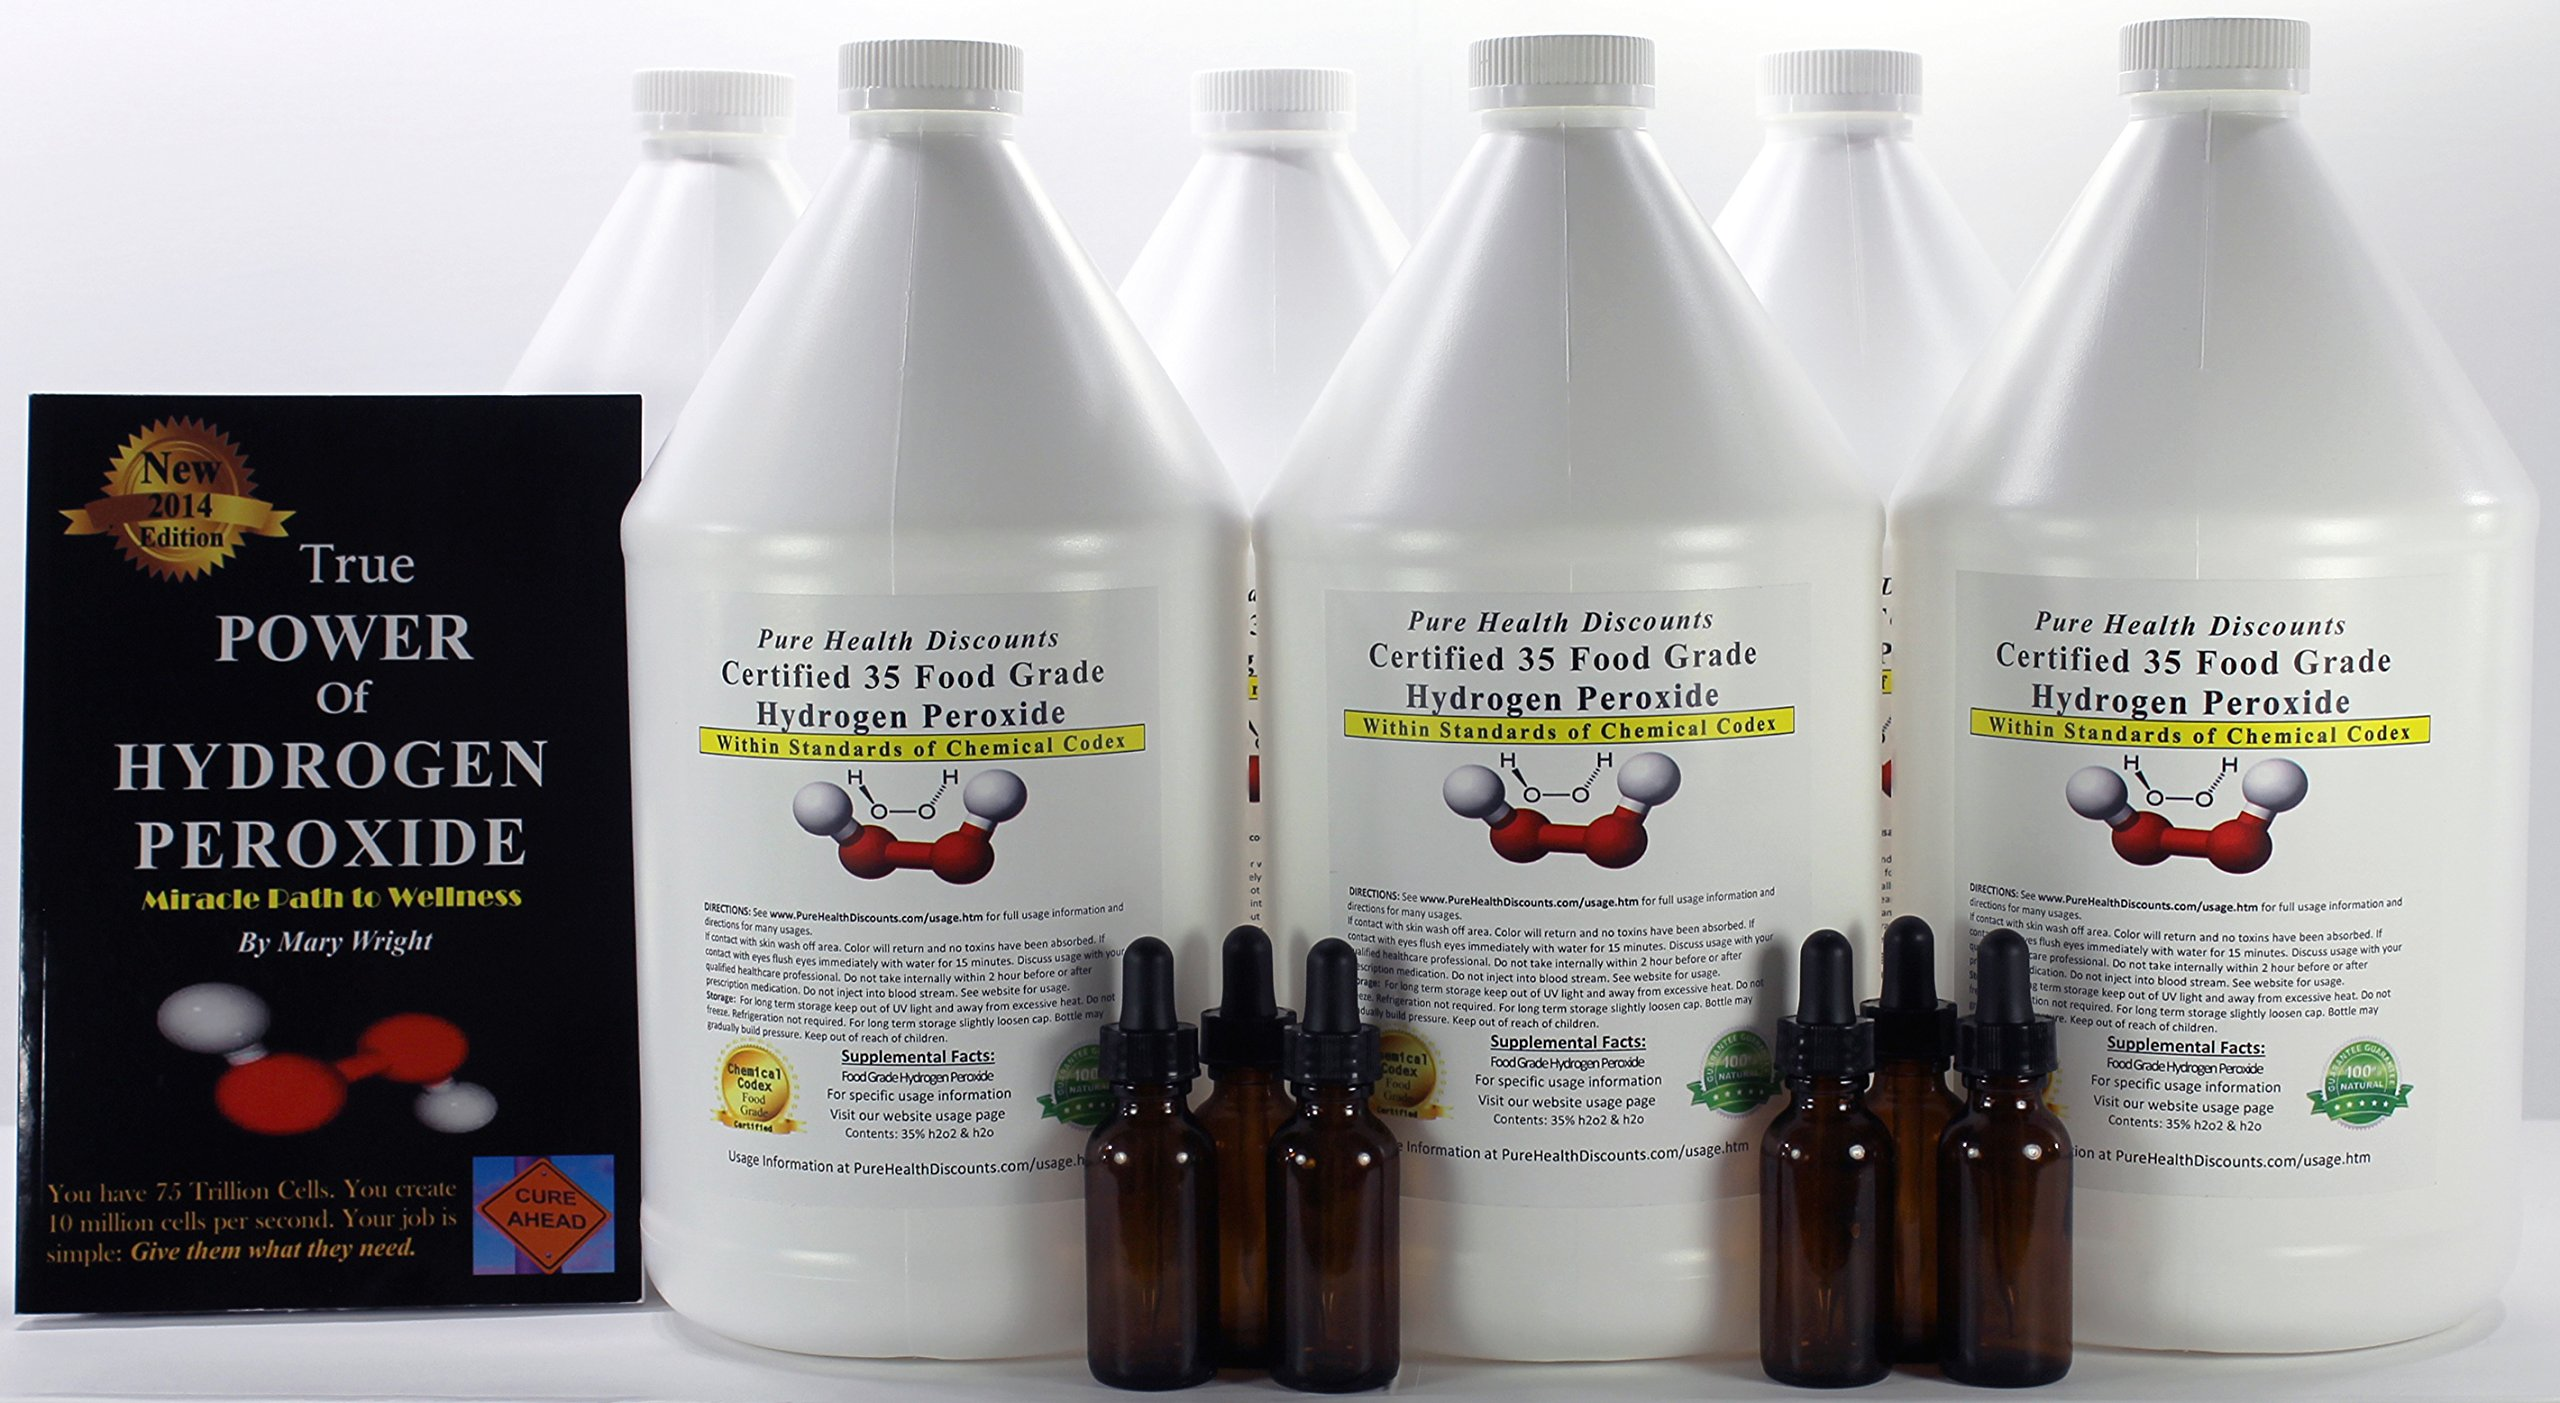 6 Gallons of 35% Food Grade Hydrogen Peroxide. Plus THE 2014 TRUE POWER OF HYDROGEN PEROXIDE, Miracle Path to Wellness. Bonus 6 Amber Dropper bottles.